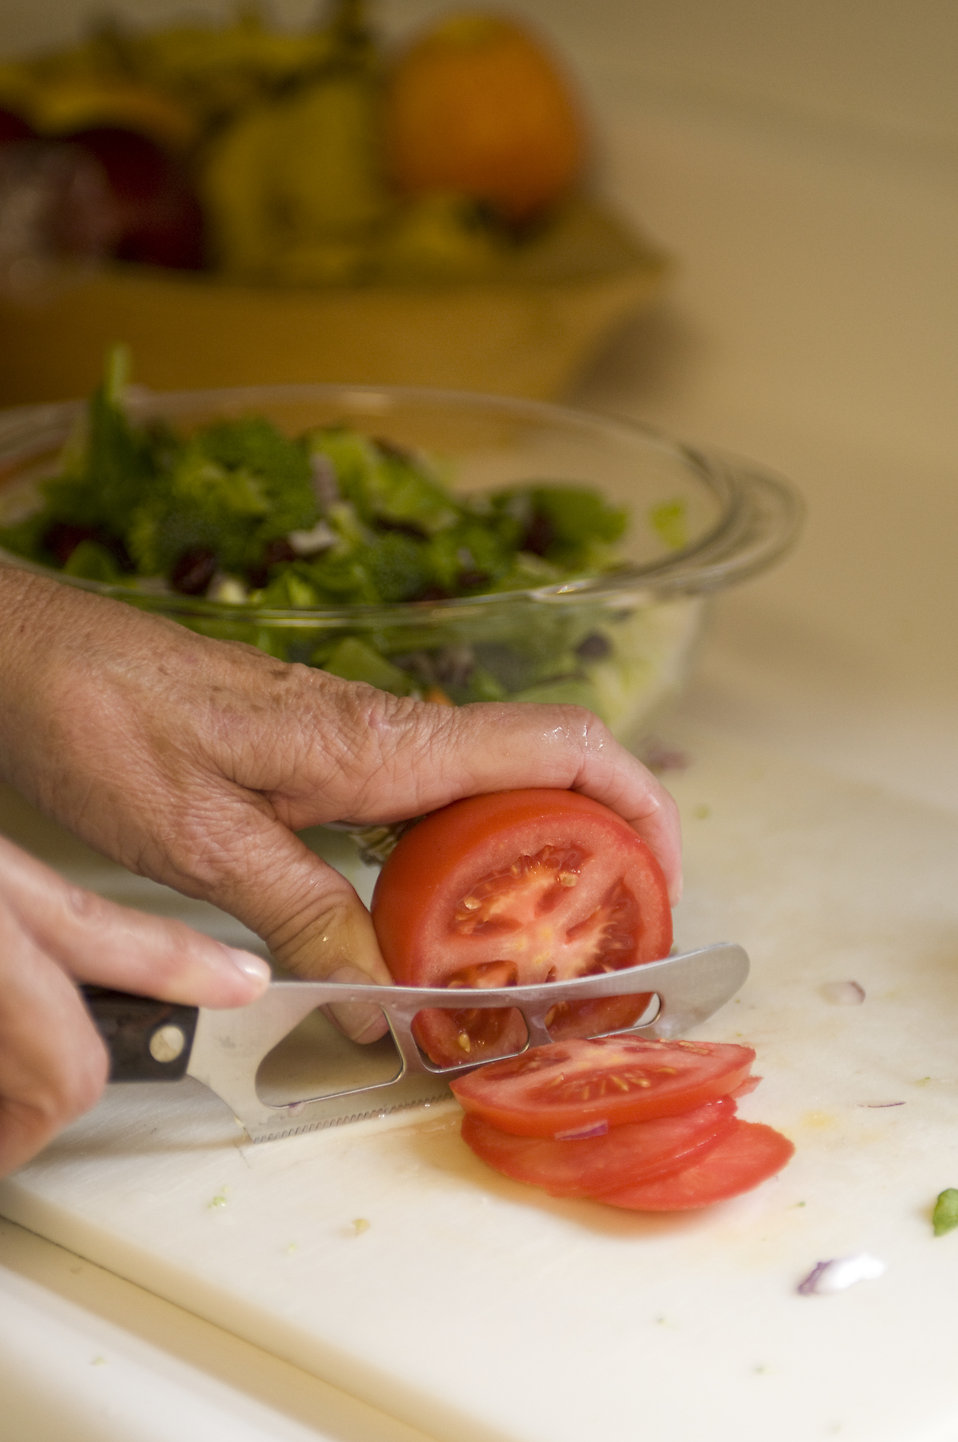 Preparing a salad in a kitchen : Free Stock Photo